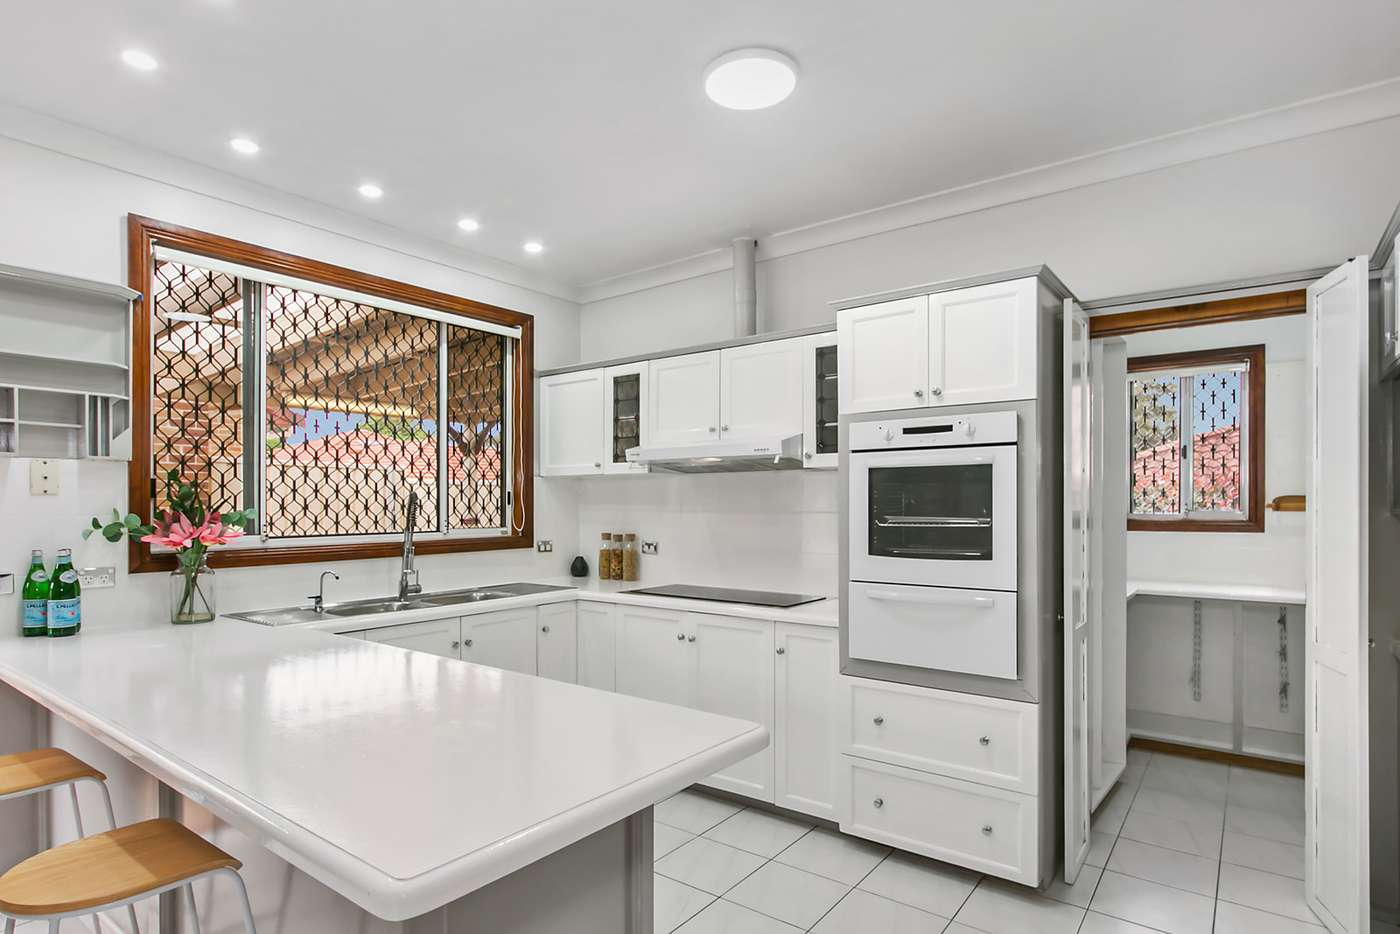 Fifth view of Homely house listing, 38 Veron Street, Wentworthville NSW 2145